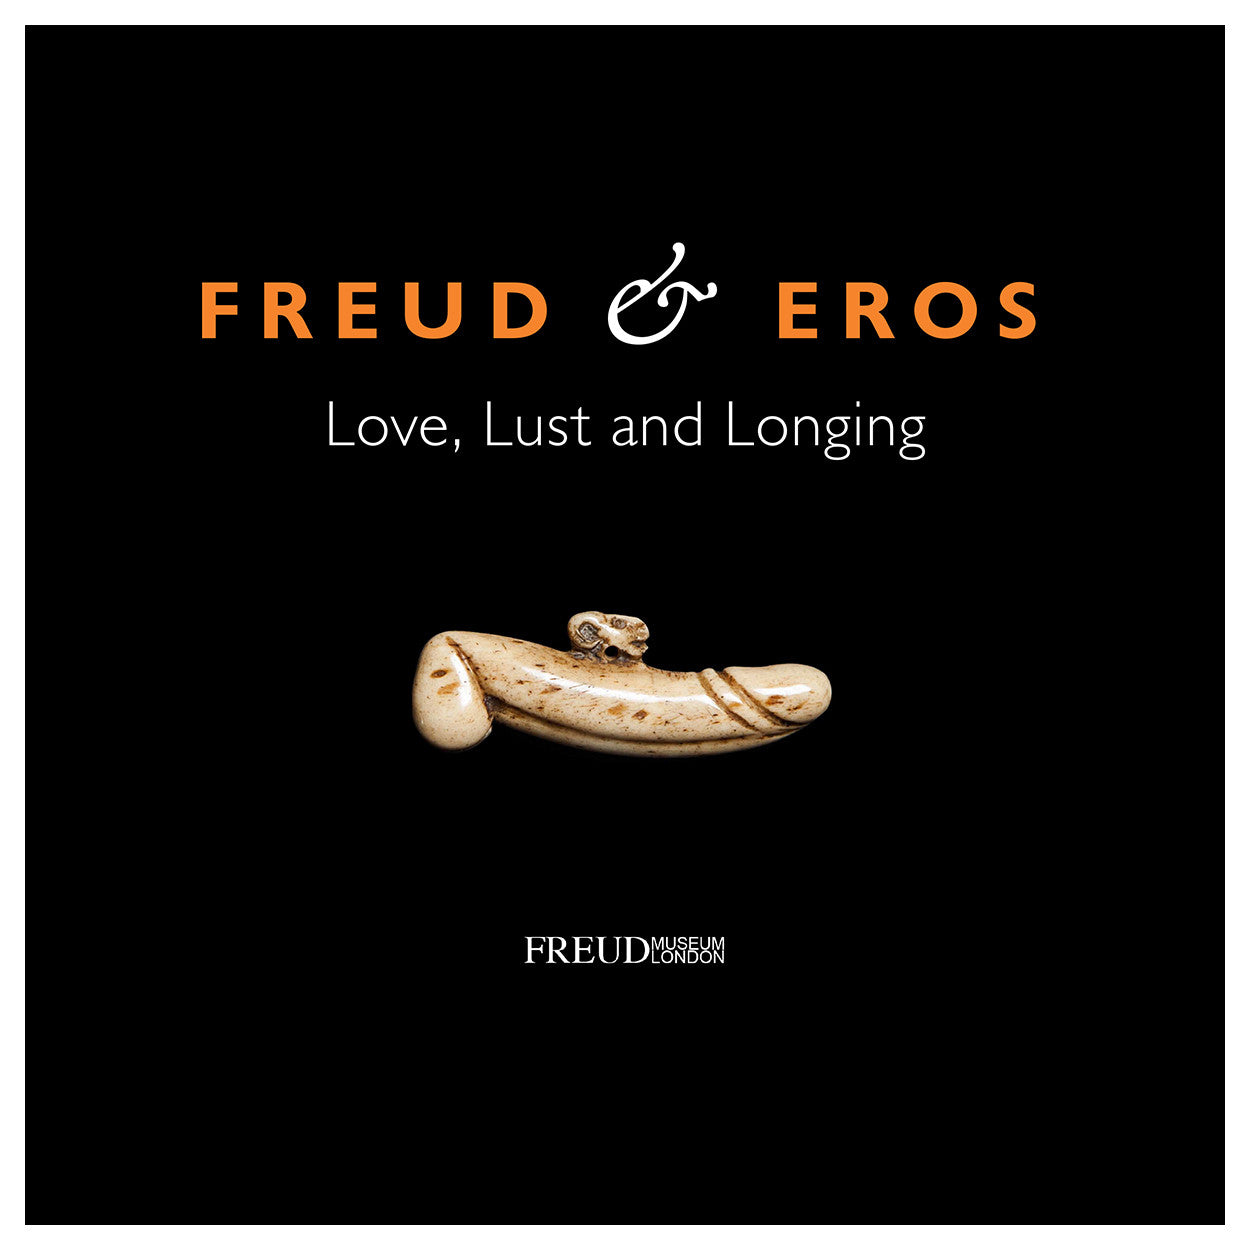 Exhibition Catalogue Freud Love Lust And Longing